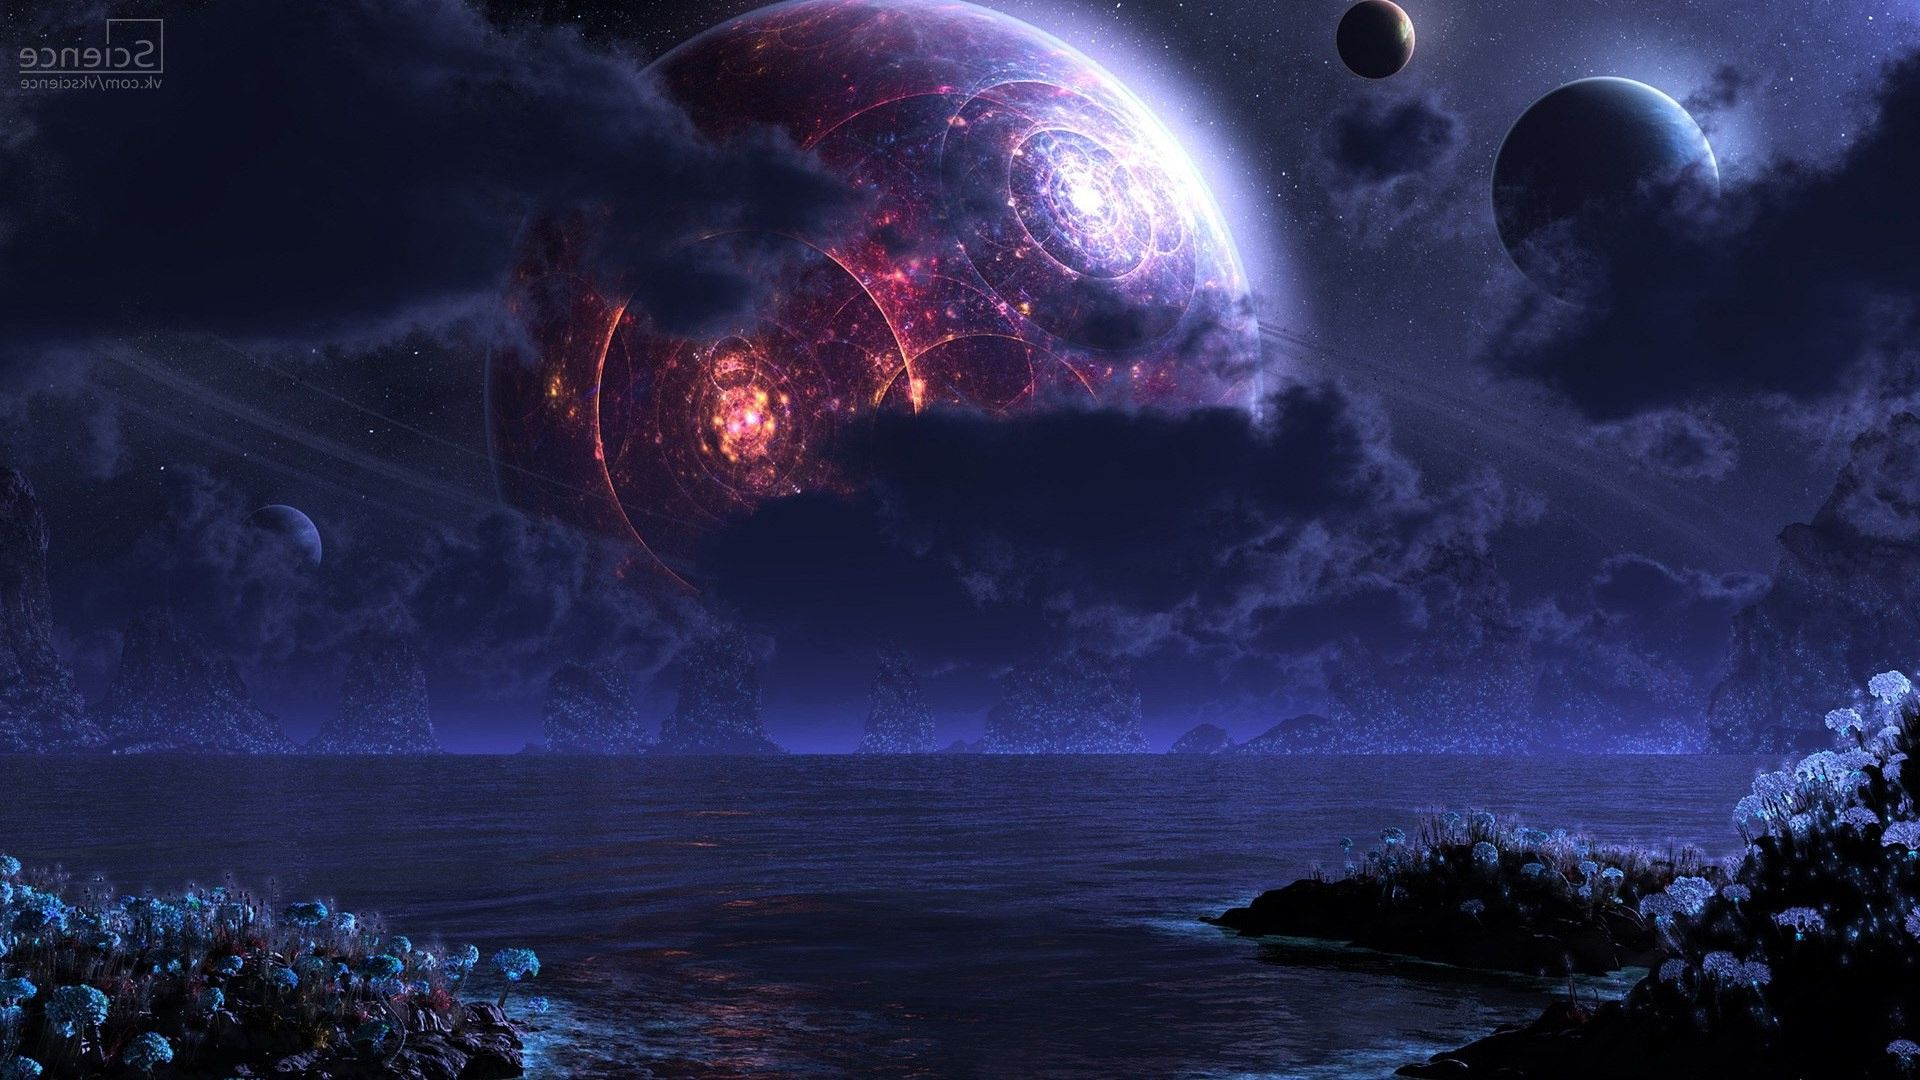 Space Futuristic Wallpaper Planets Wallpaper Space Pictures Planets